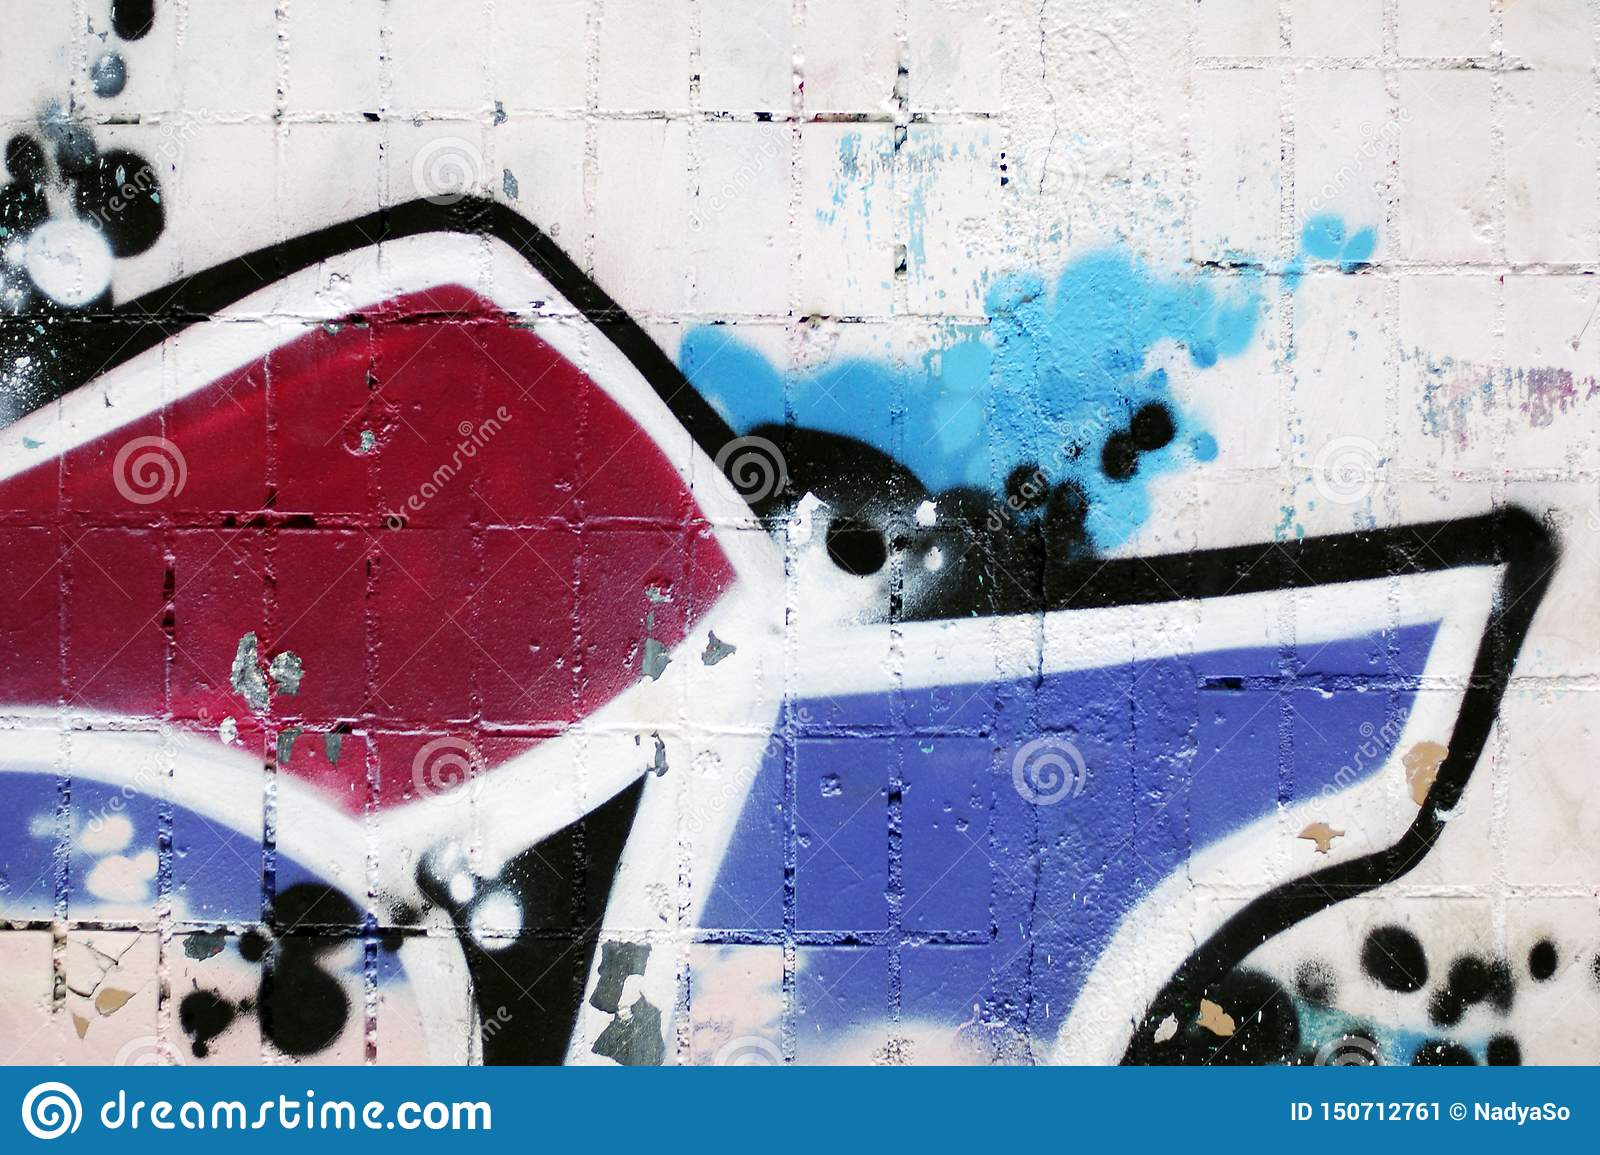 Urban abstract background, shabby wall with fragments of colorful paint